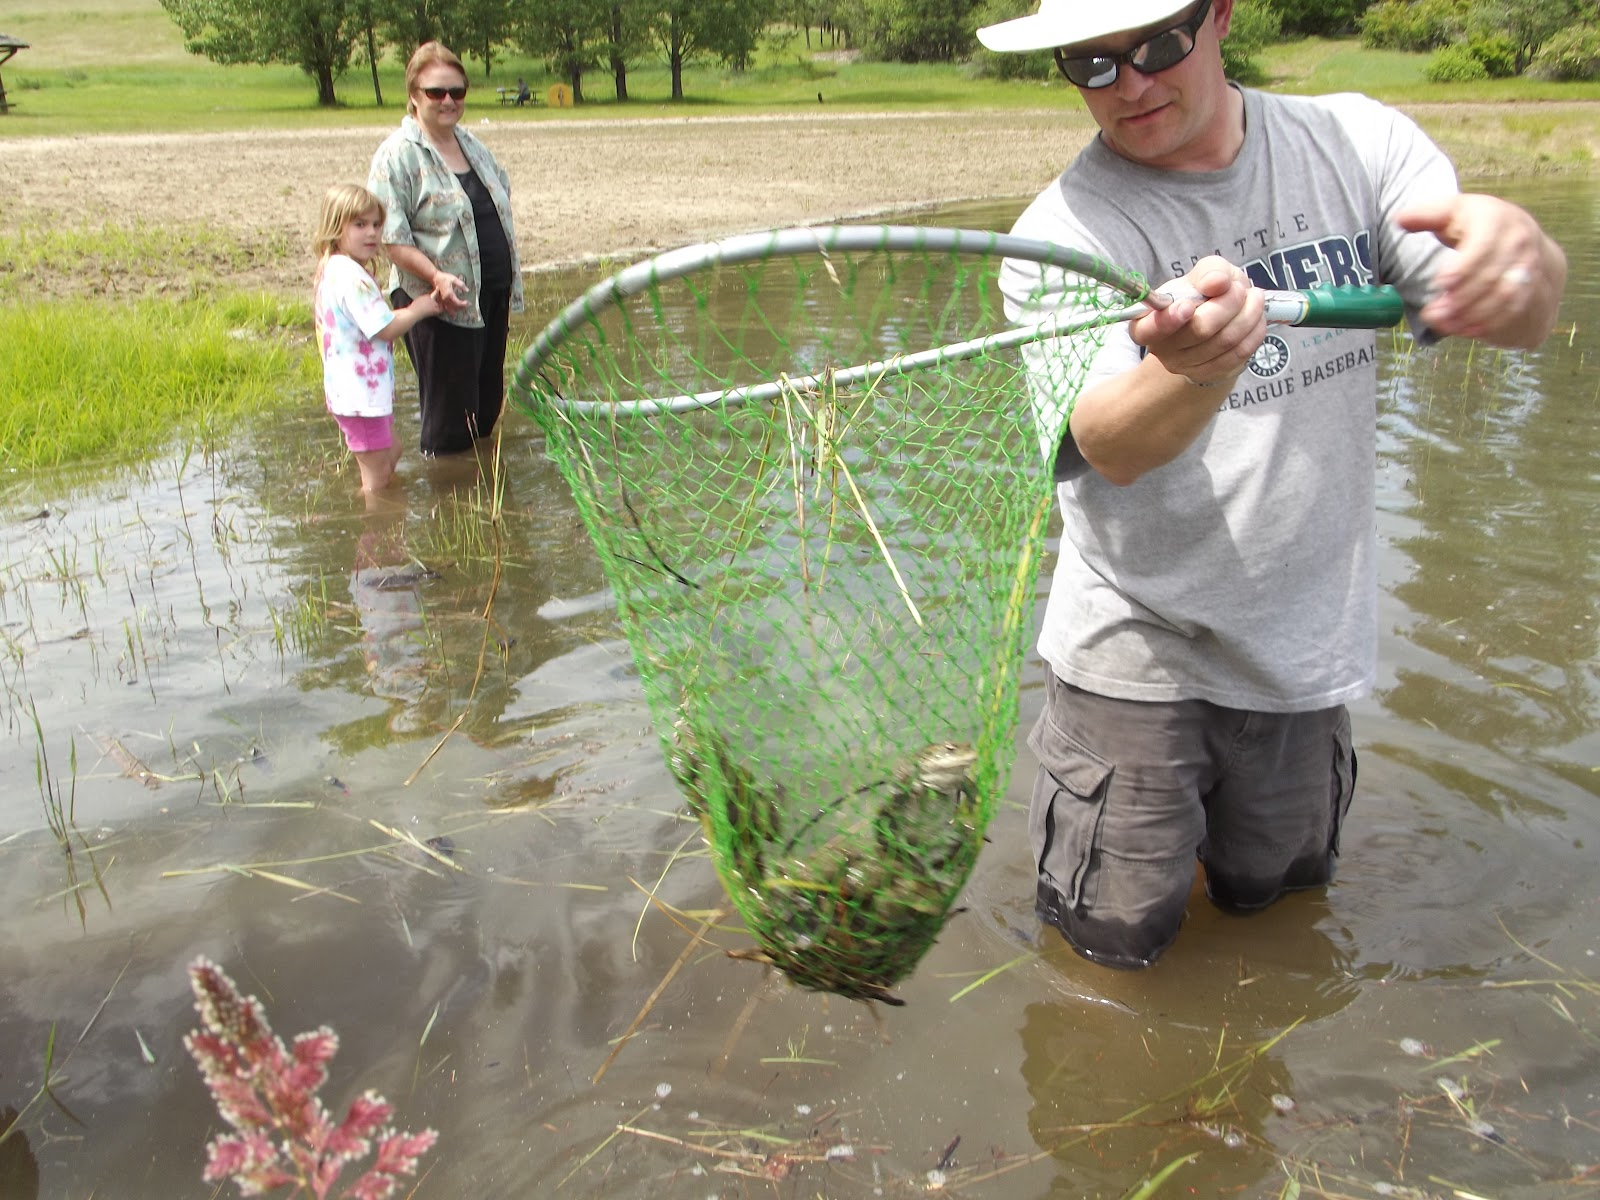 Scooping frogs into a net